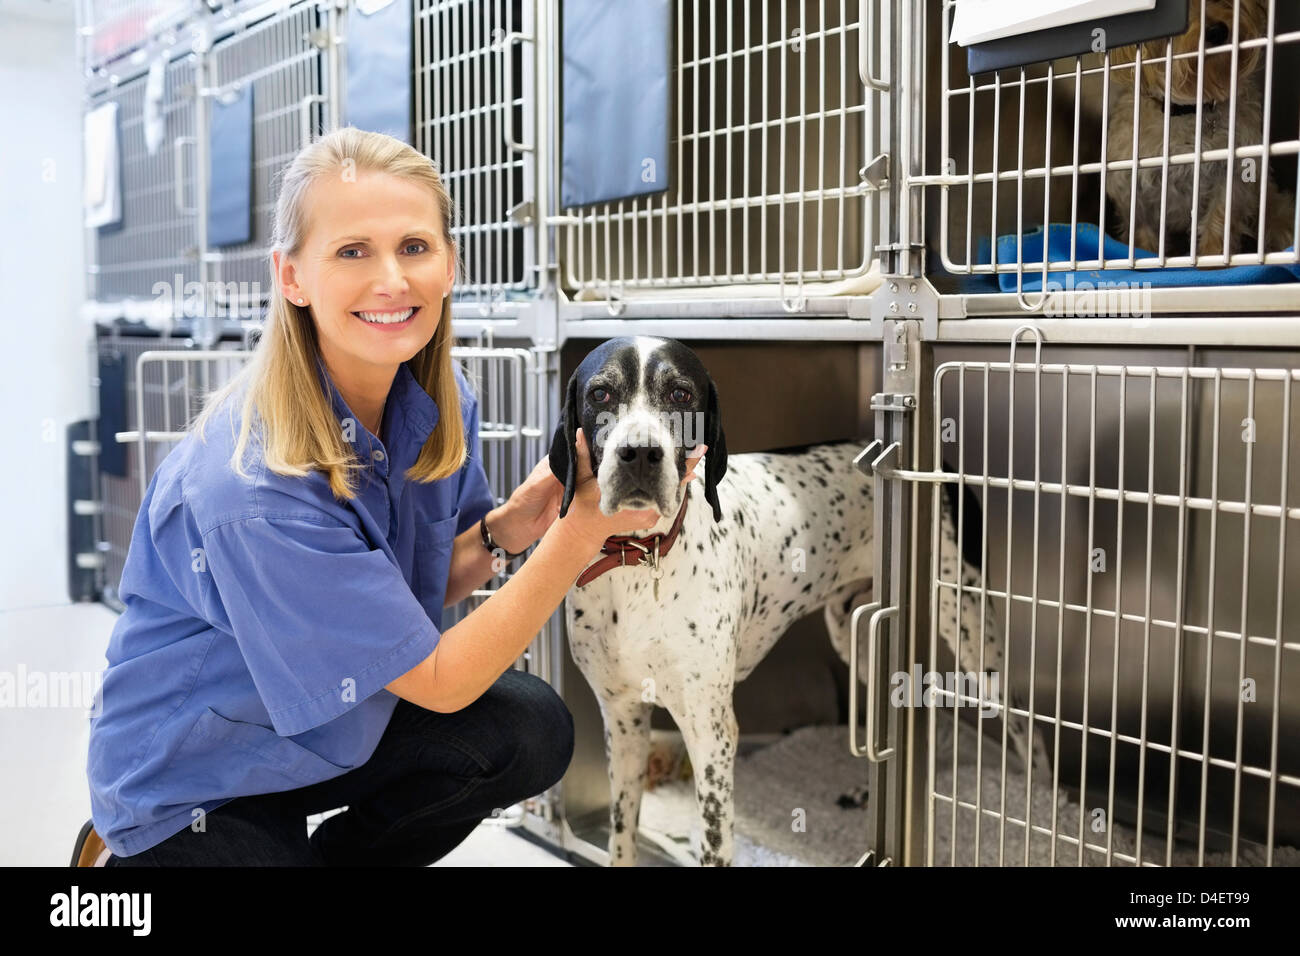 Vet placing dog in kennel - Stock Image